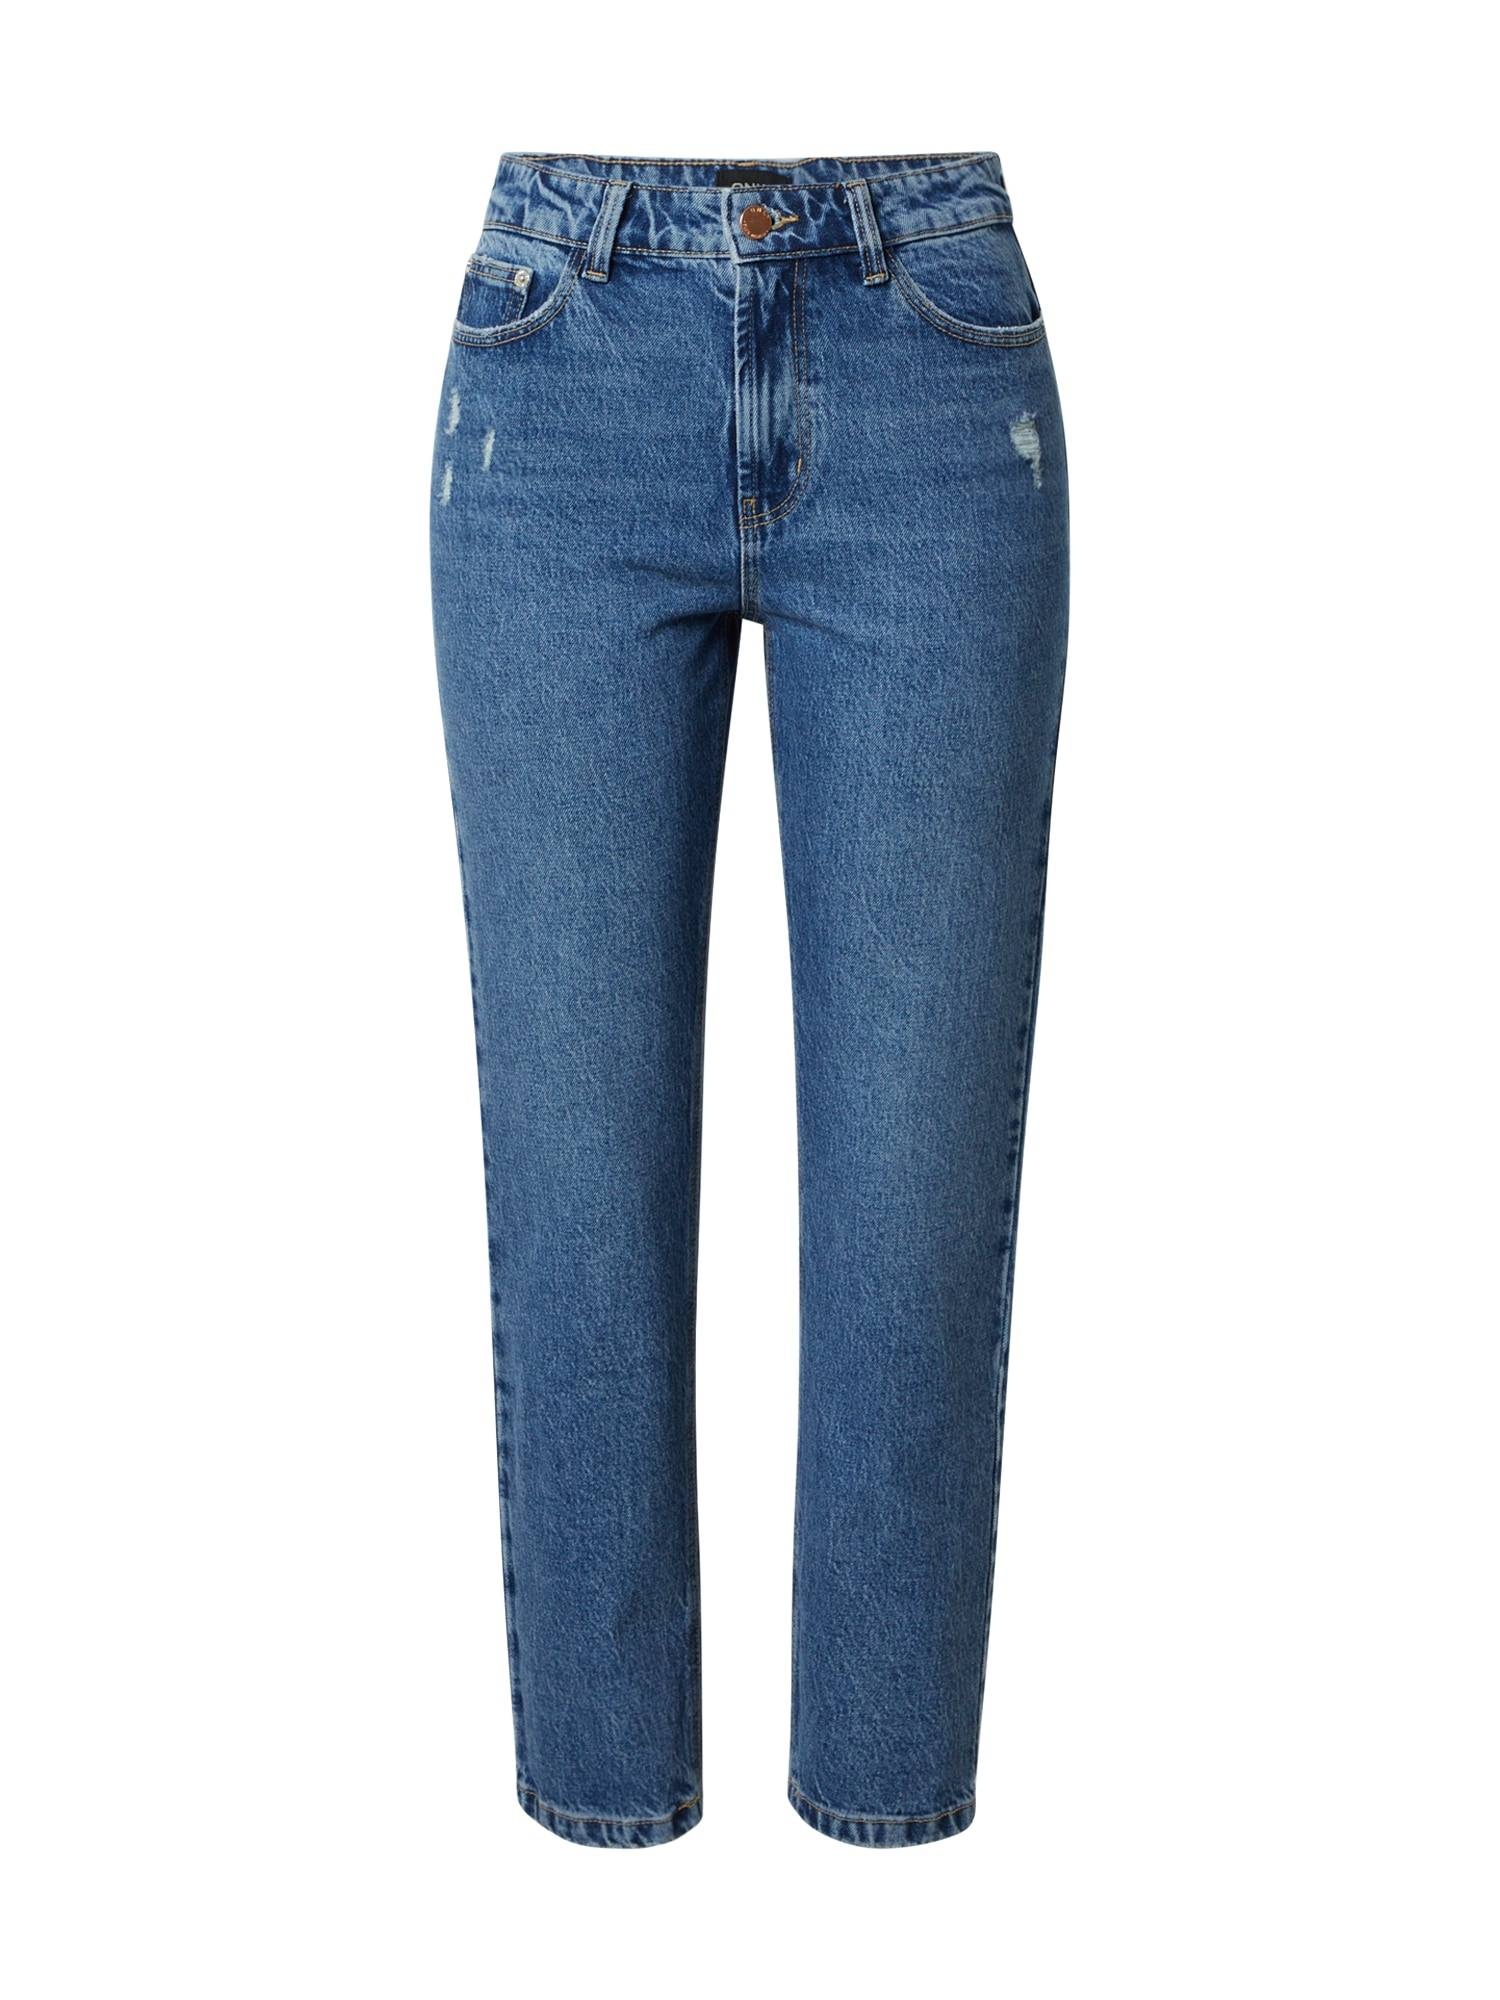 ONLY Jean 'Emily'  - Bleu - Taille: 26 - female